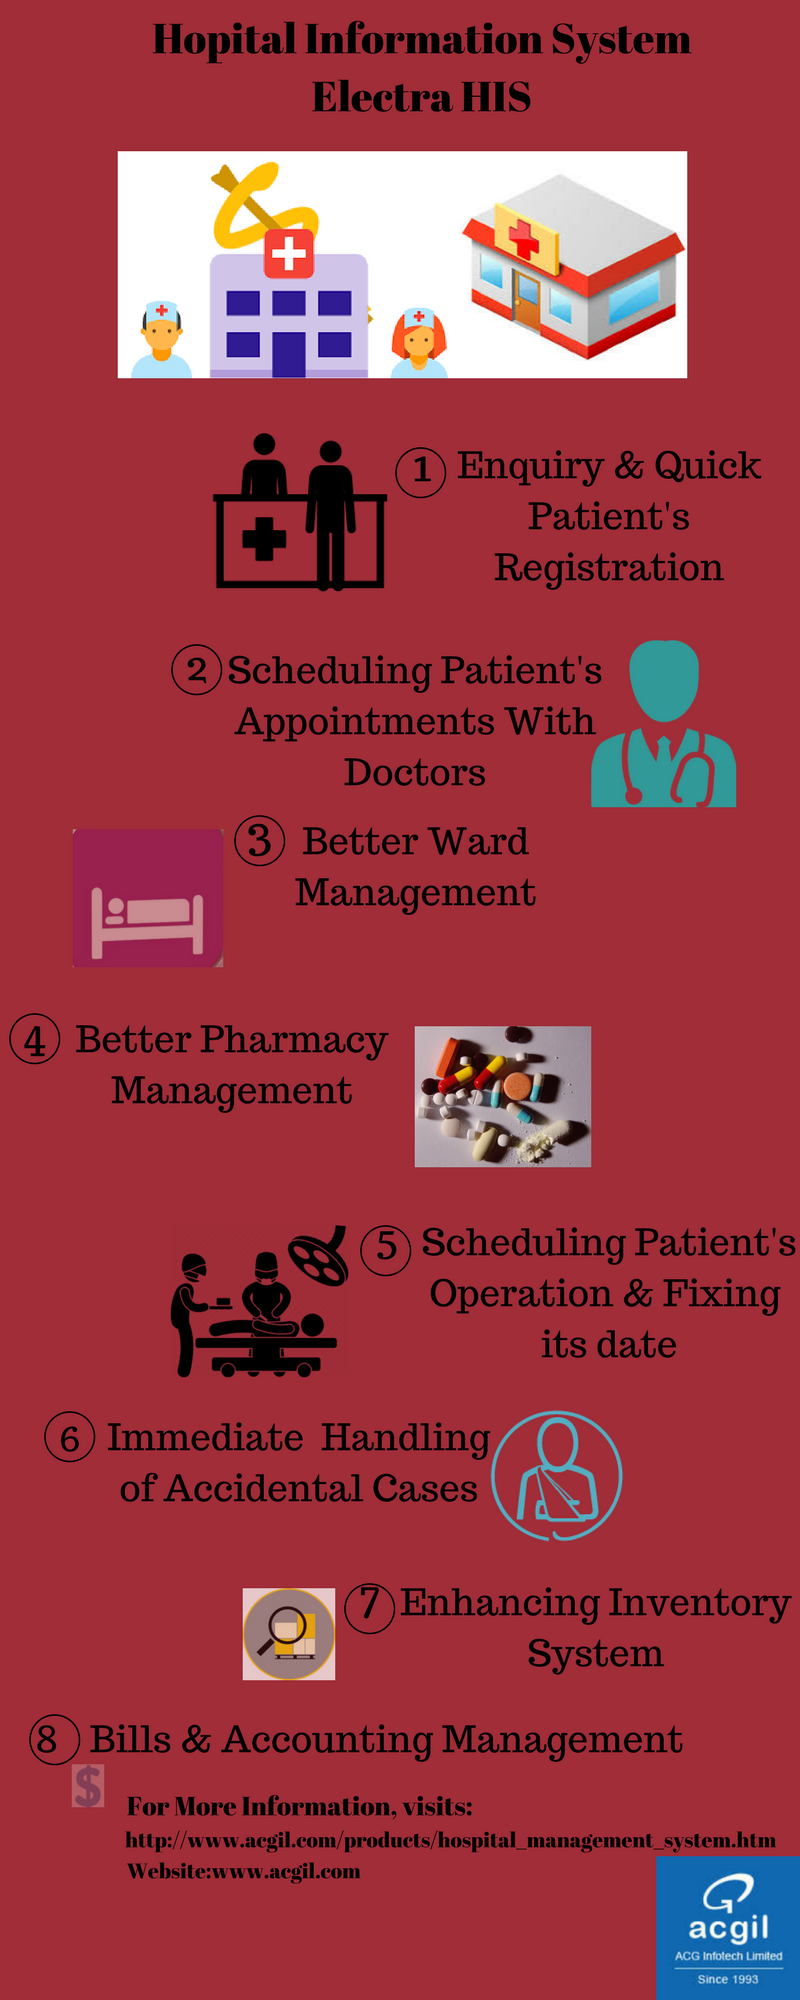 Looking for a hospital information management system, then